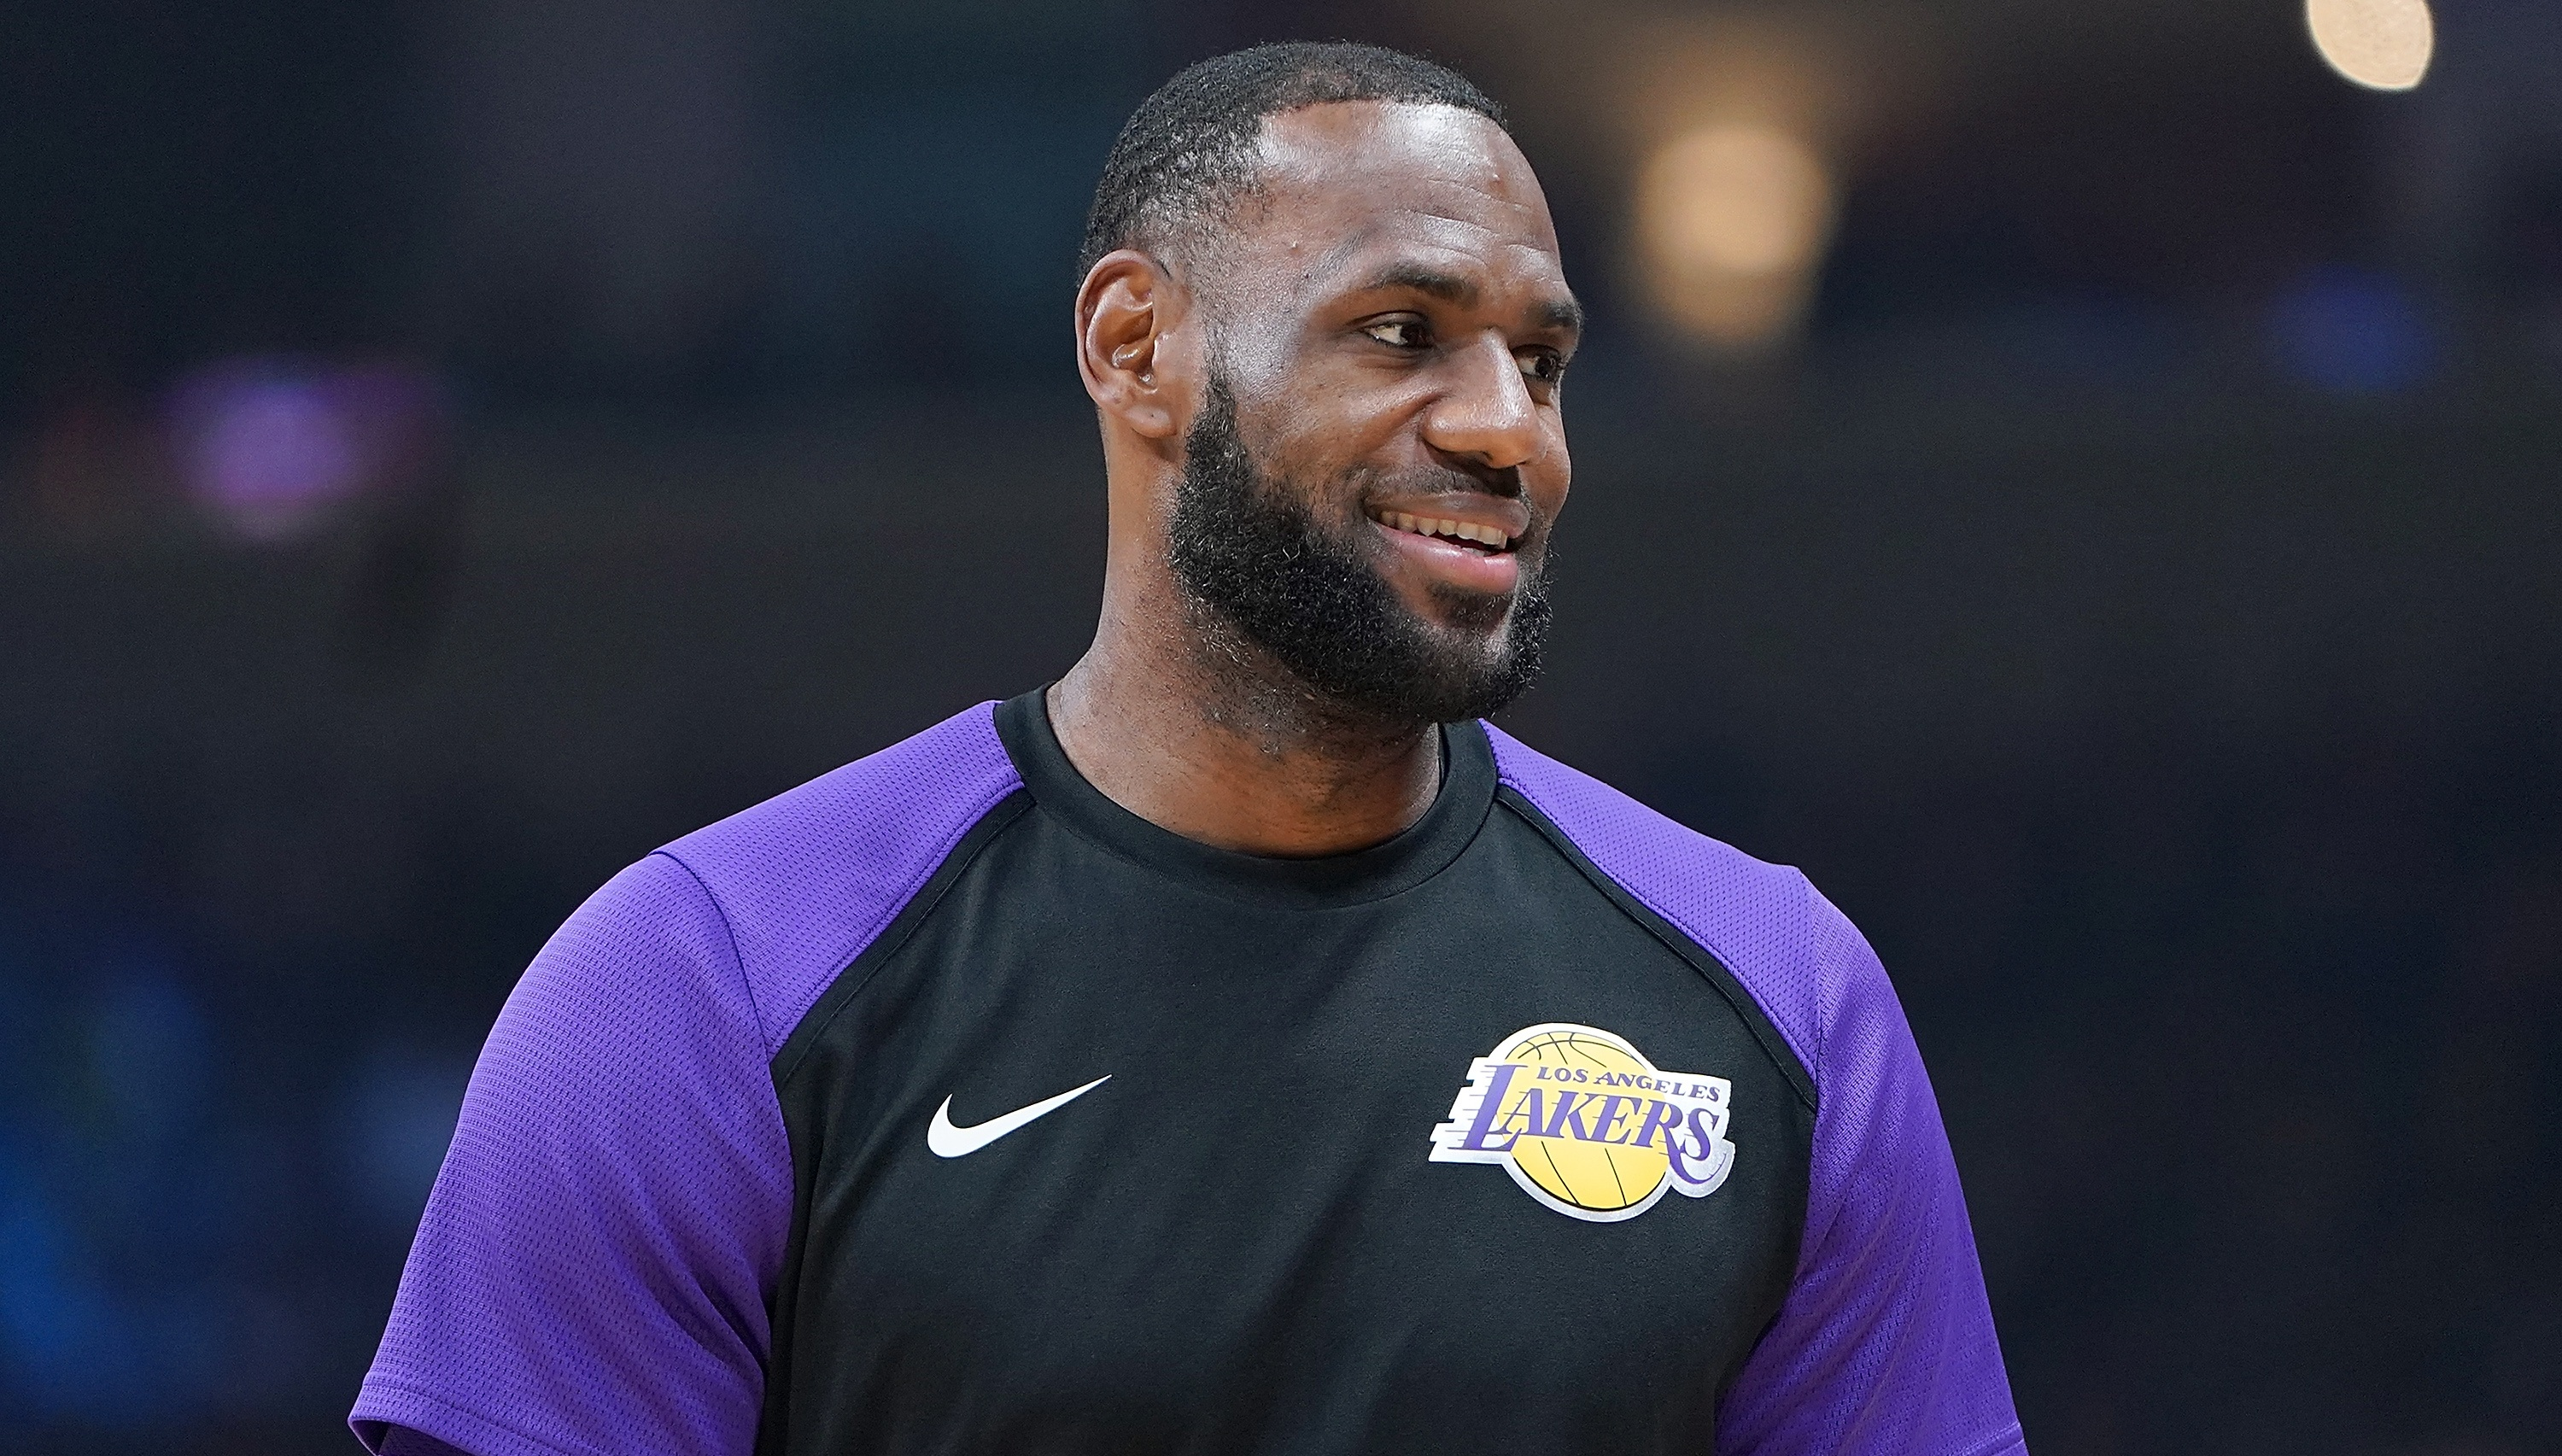 06a85d11fbe4 The wait is over. LeBron James will play his first regular season game with  the Los Angeles Lakers on Thursday